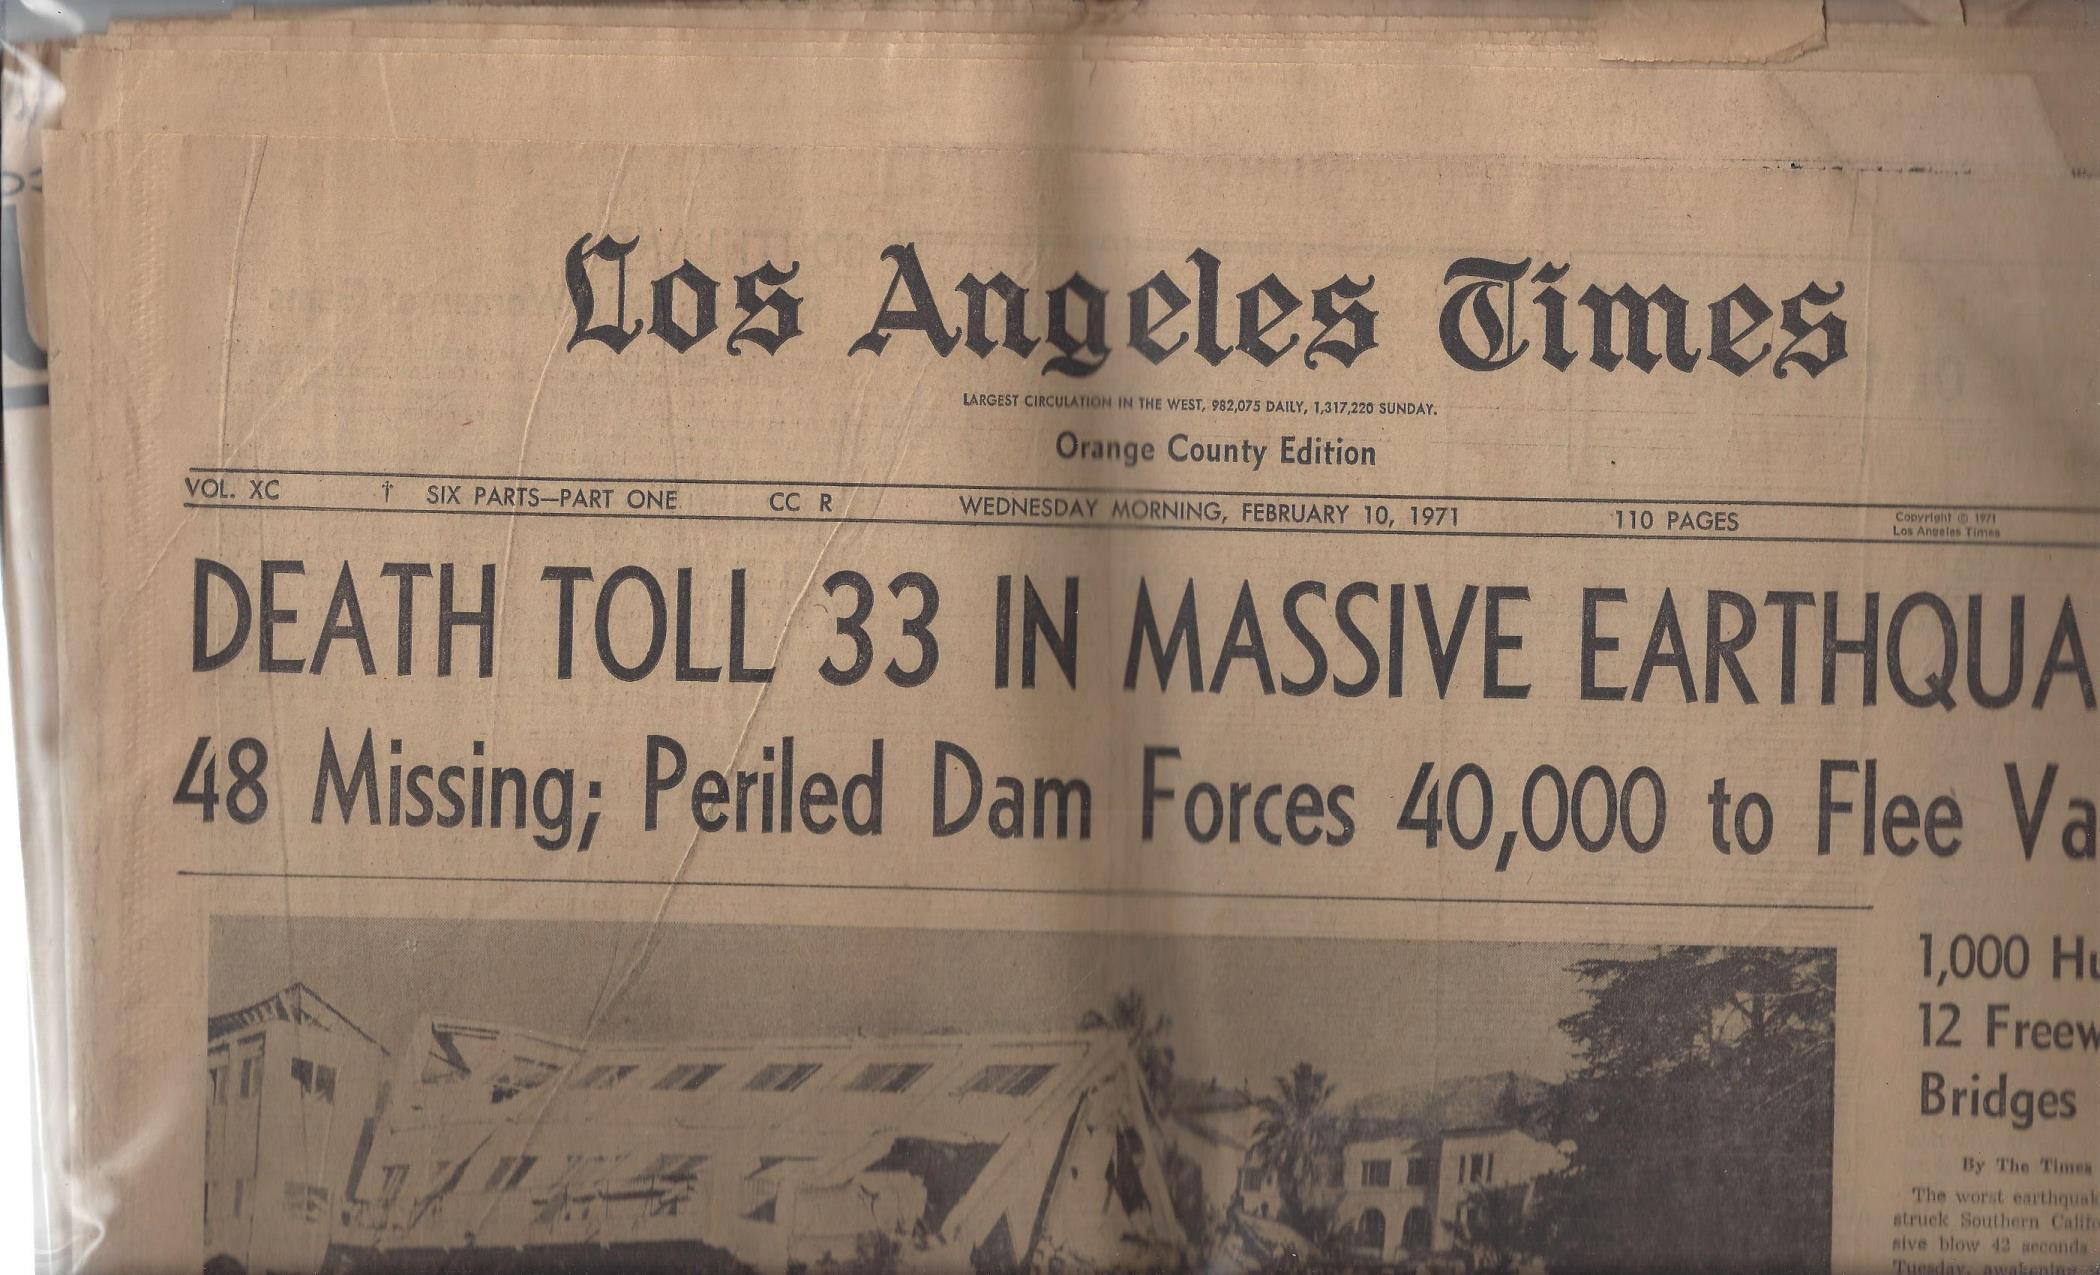 "Los Angeles Times, Orange County Edition: ""Death Toll 33 in Massive Earthquake"" (Wednesday Morning, February 10, 1971), Los Angeles Times"